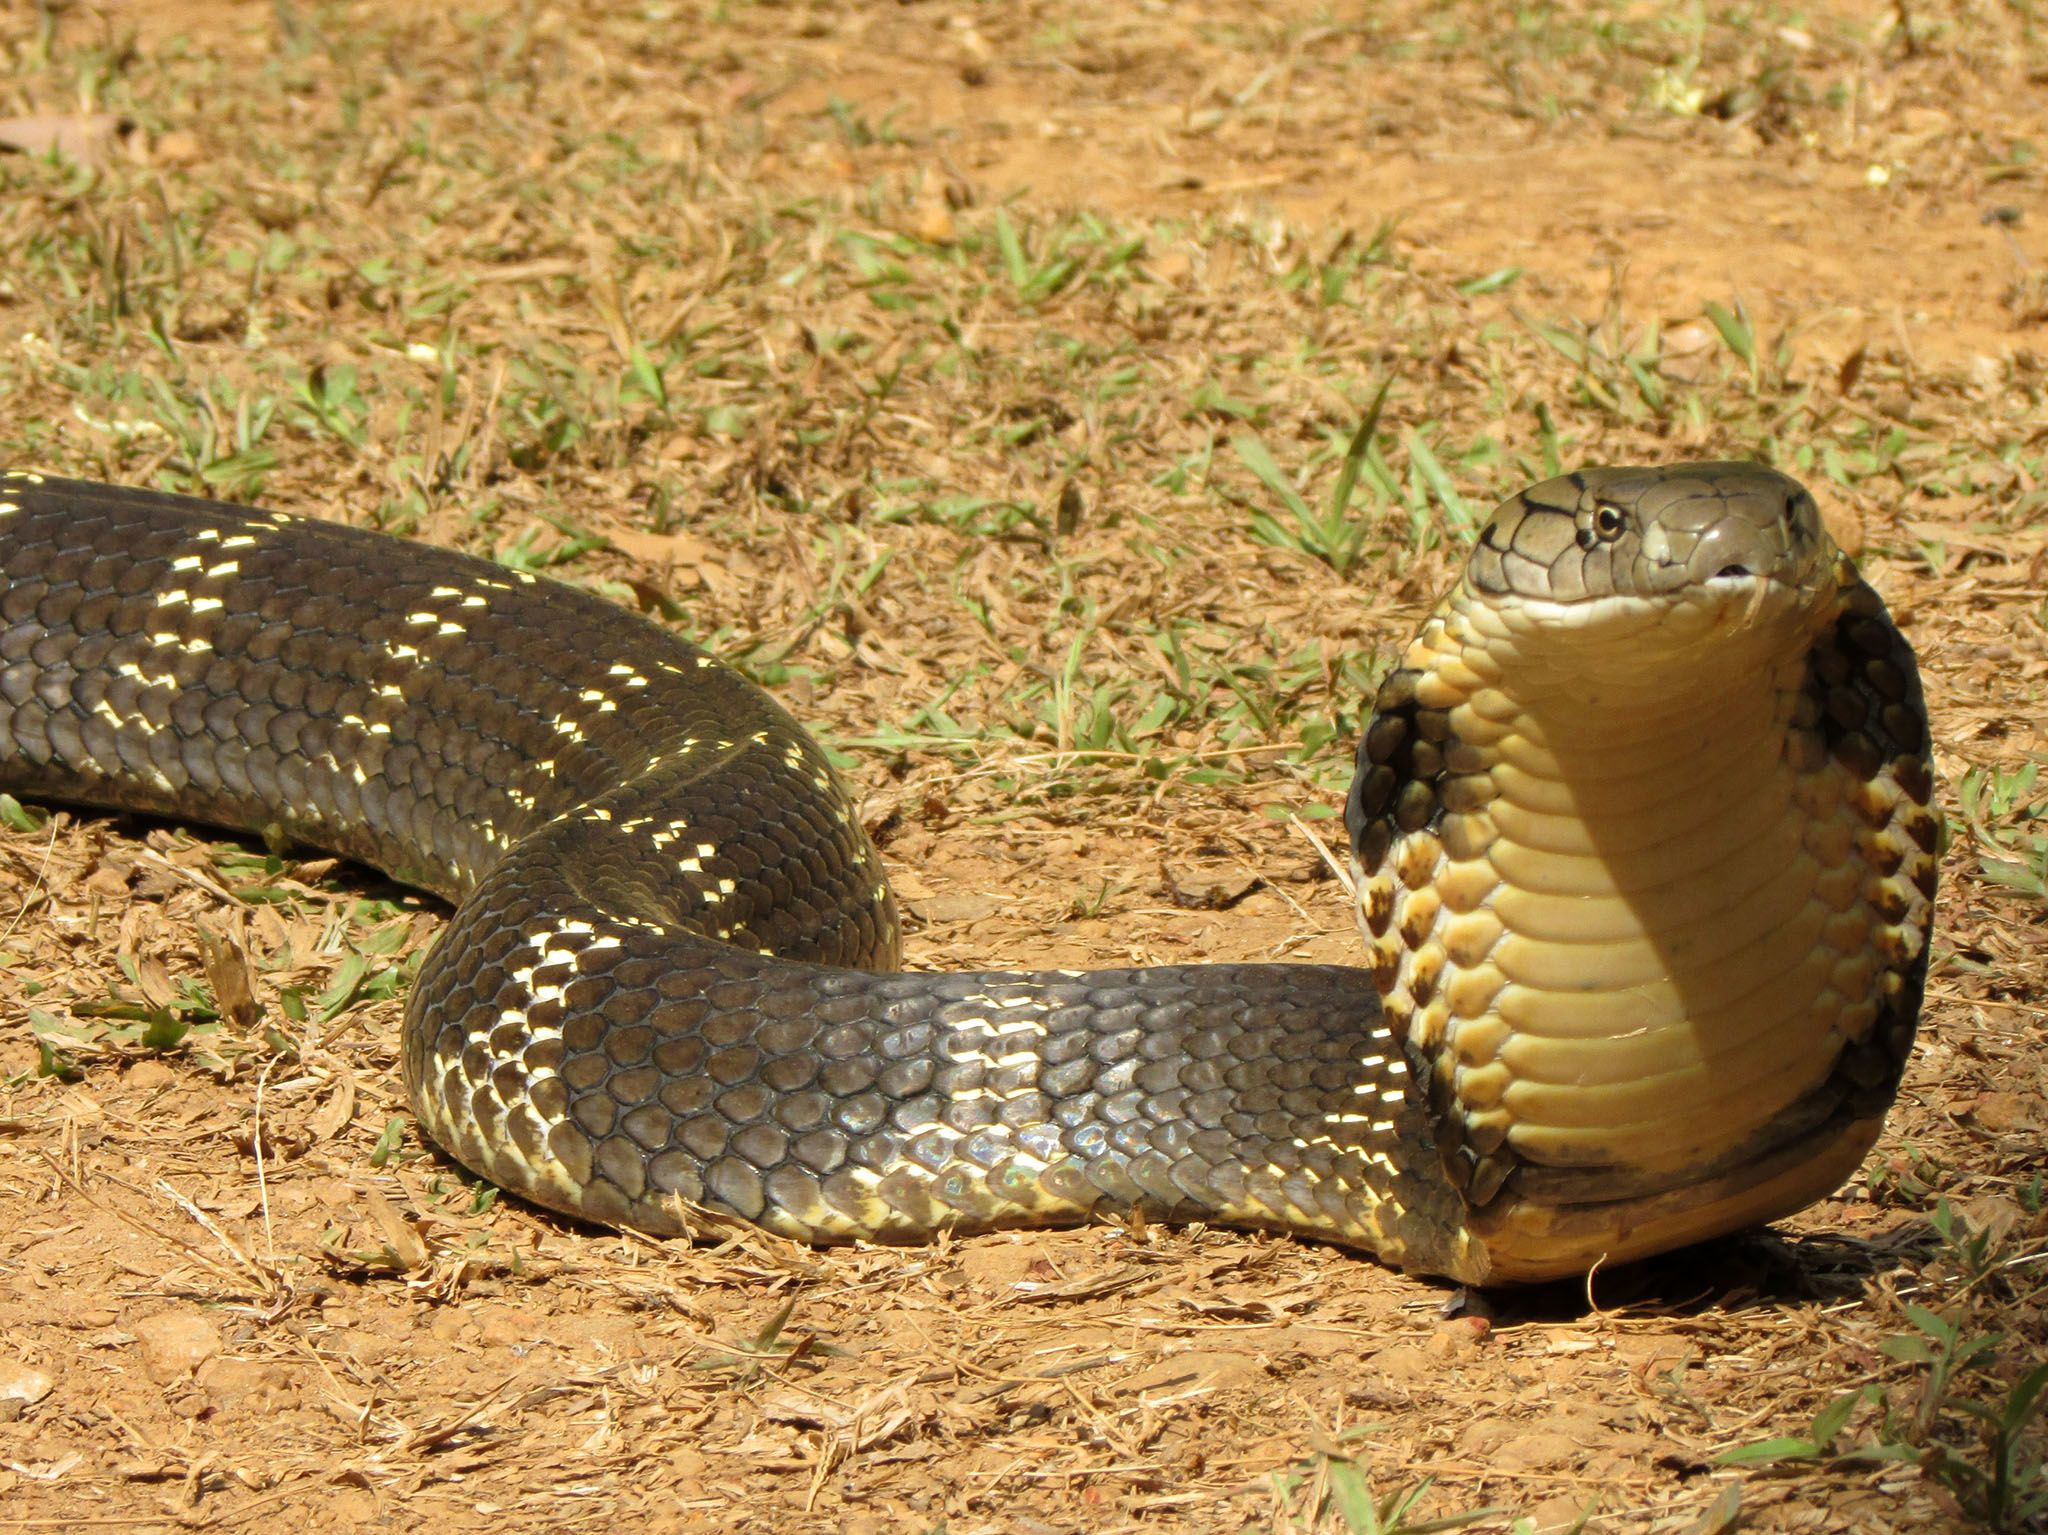 India: King cobra (Ophiophagus hannah) slithering on dry grass, raised head. This image is from... [Photo of the day - 六月 2017]